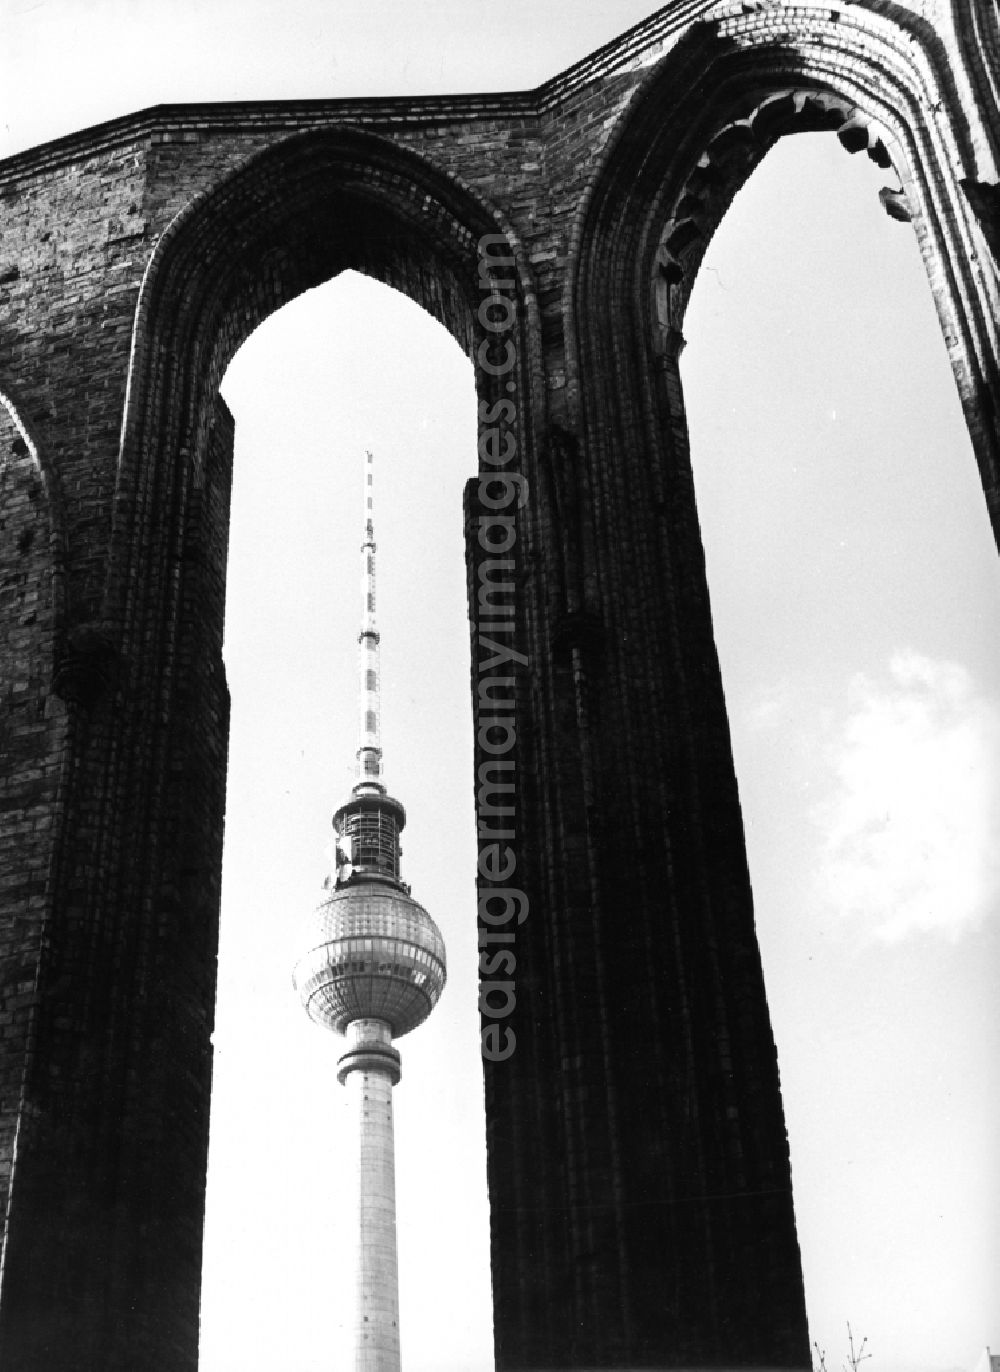 GDR photo archive: Berlin - Ruins - rest of the facade silhouette and roof structure of the sacral building of the Franciscan monastery church on Klosterstrasse against the silhouette of the Berlin TV tower in the Mitte district of Berlin, the former capital of the GDR, German Democratic Republic